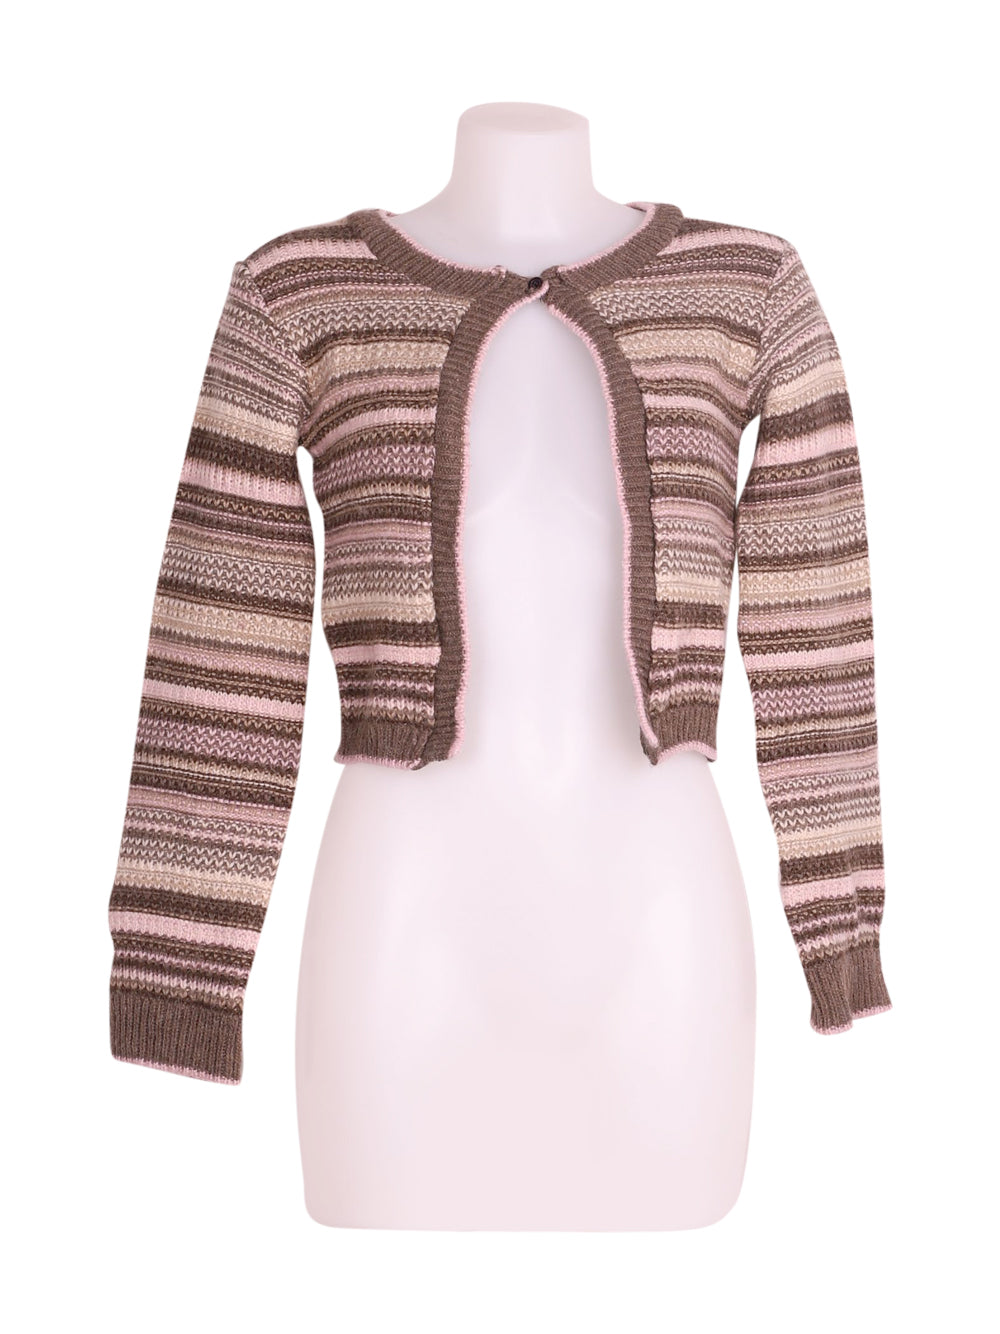 Front photo of Preloved Motivi Brown Woman's bolero - size 8/S